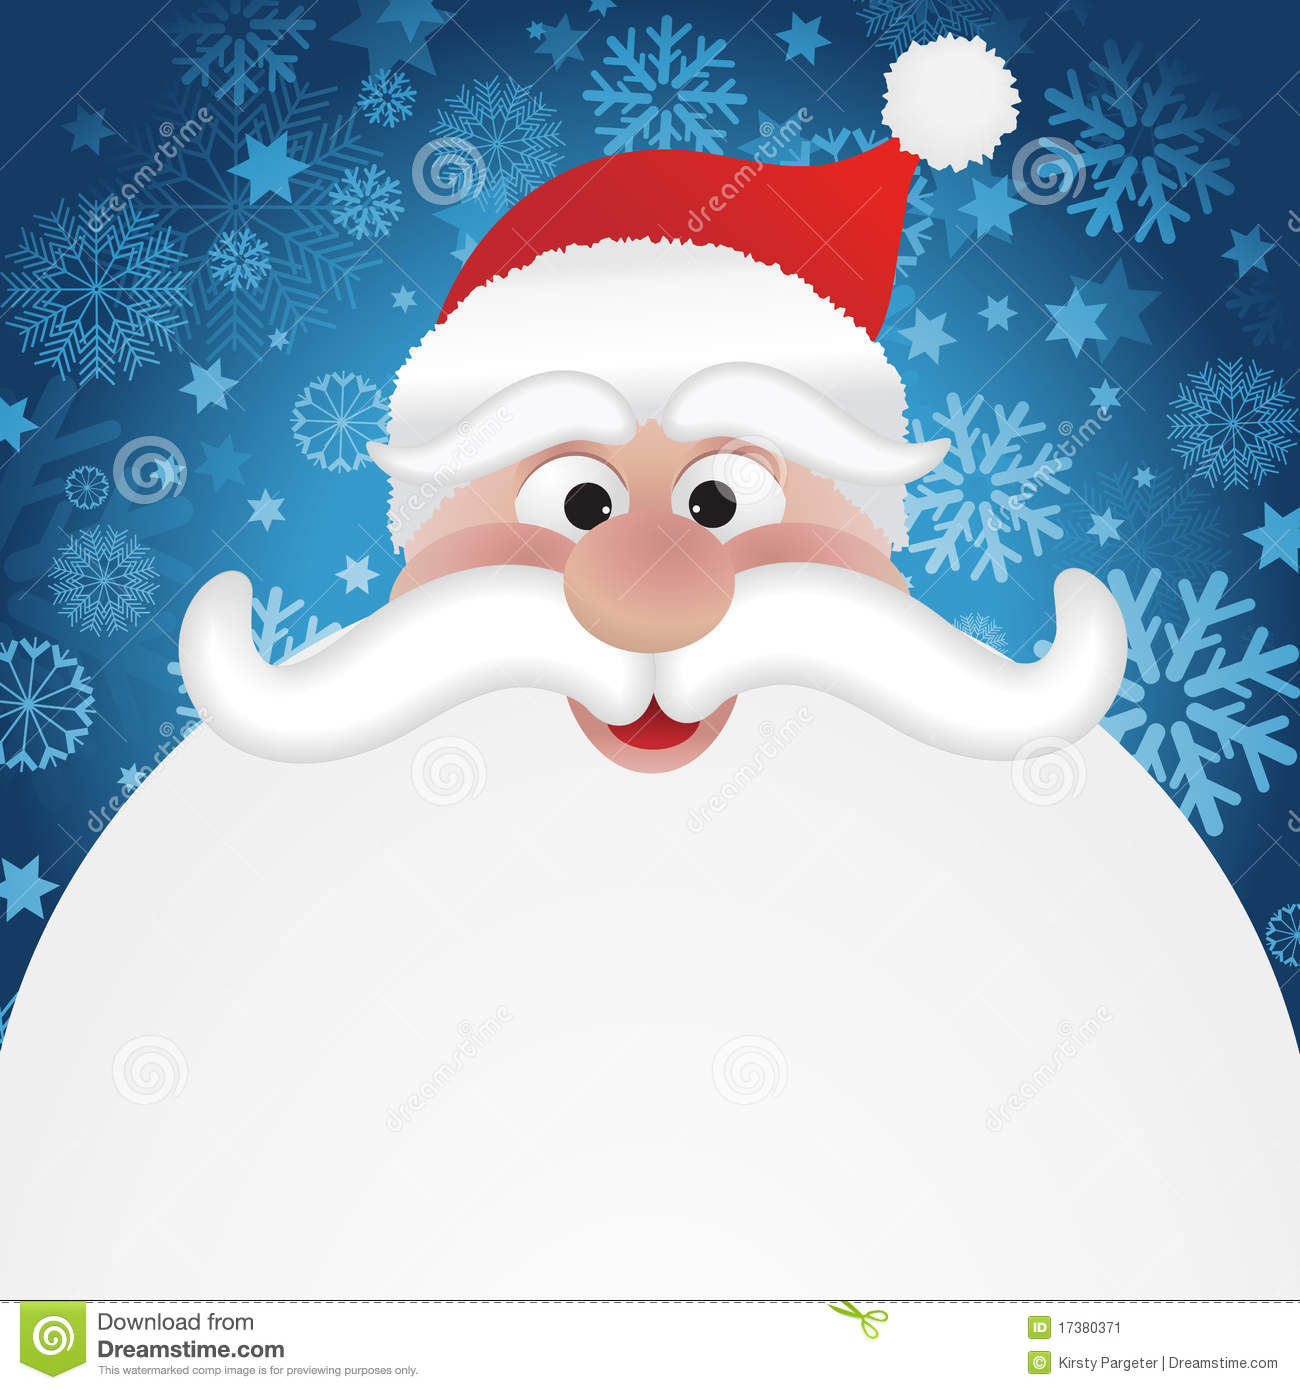 search results for santa letter background calendar 2015 search results for santas calendar 2015 126